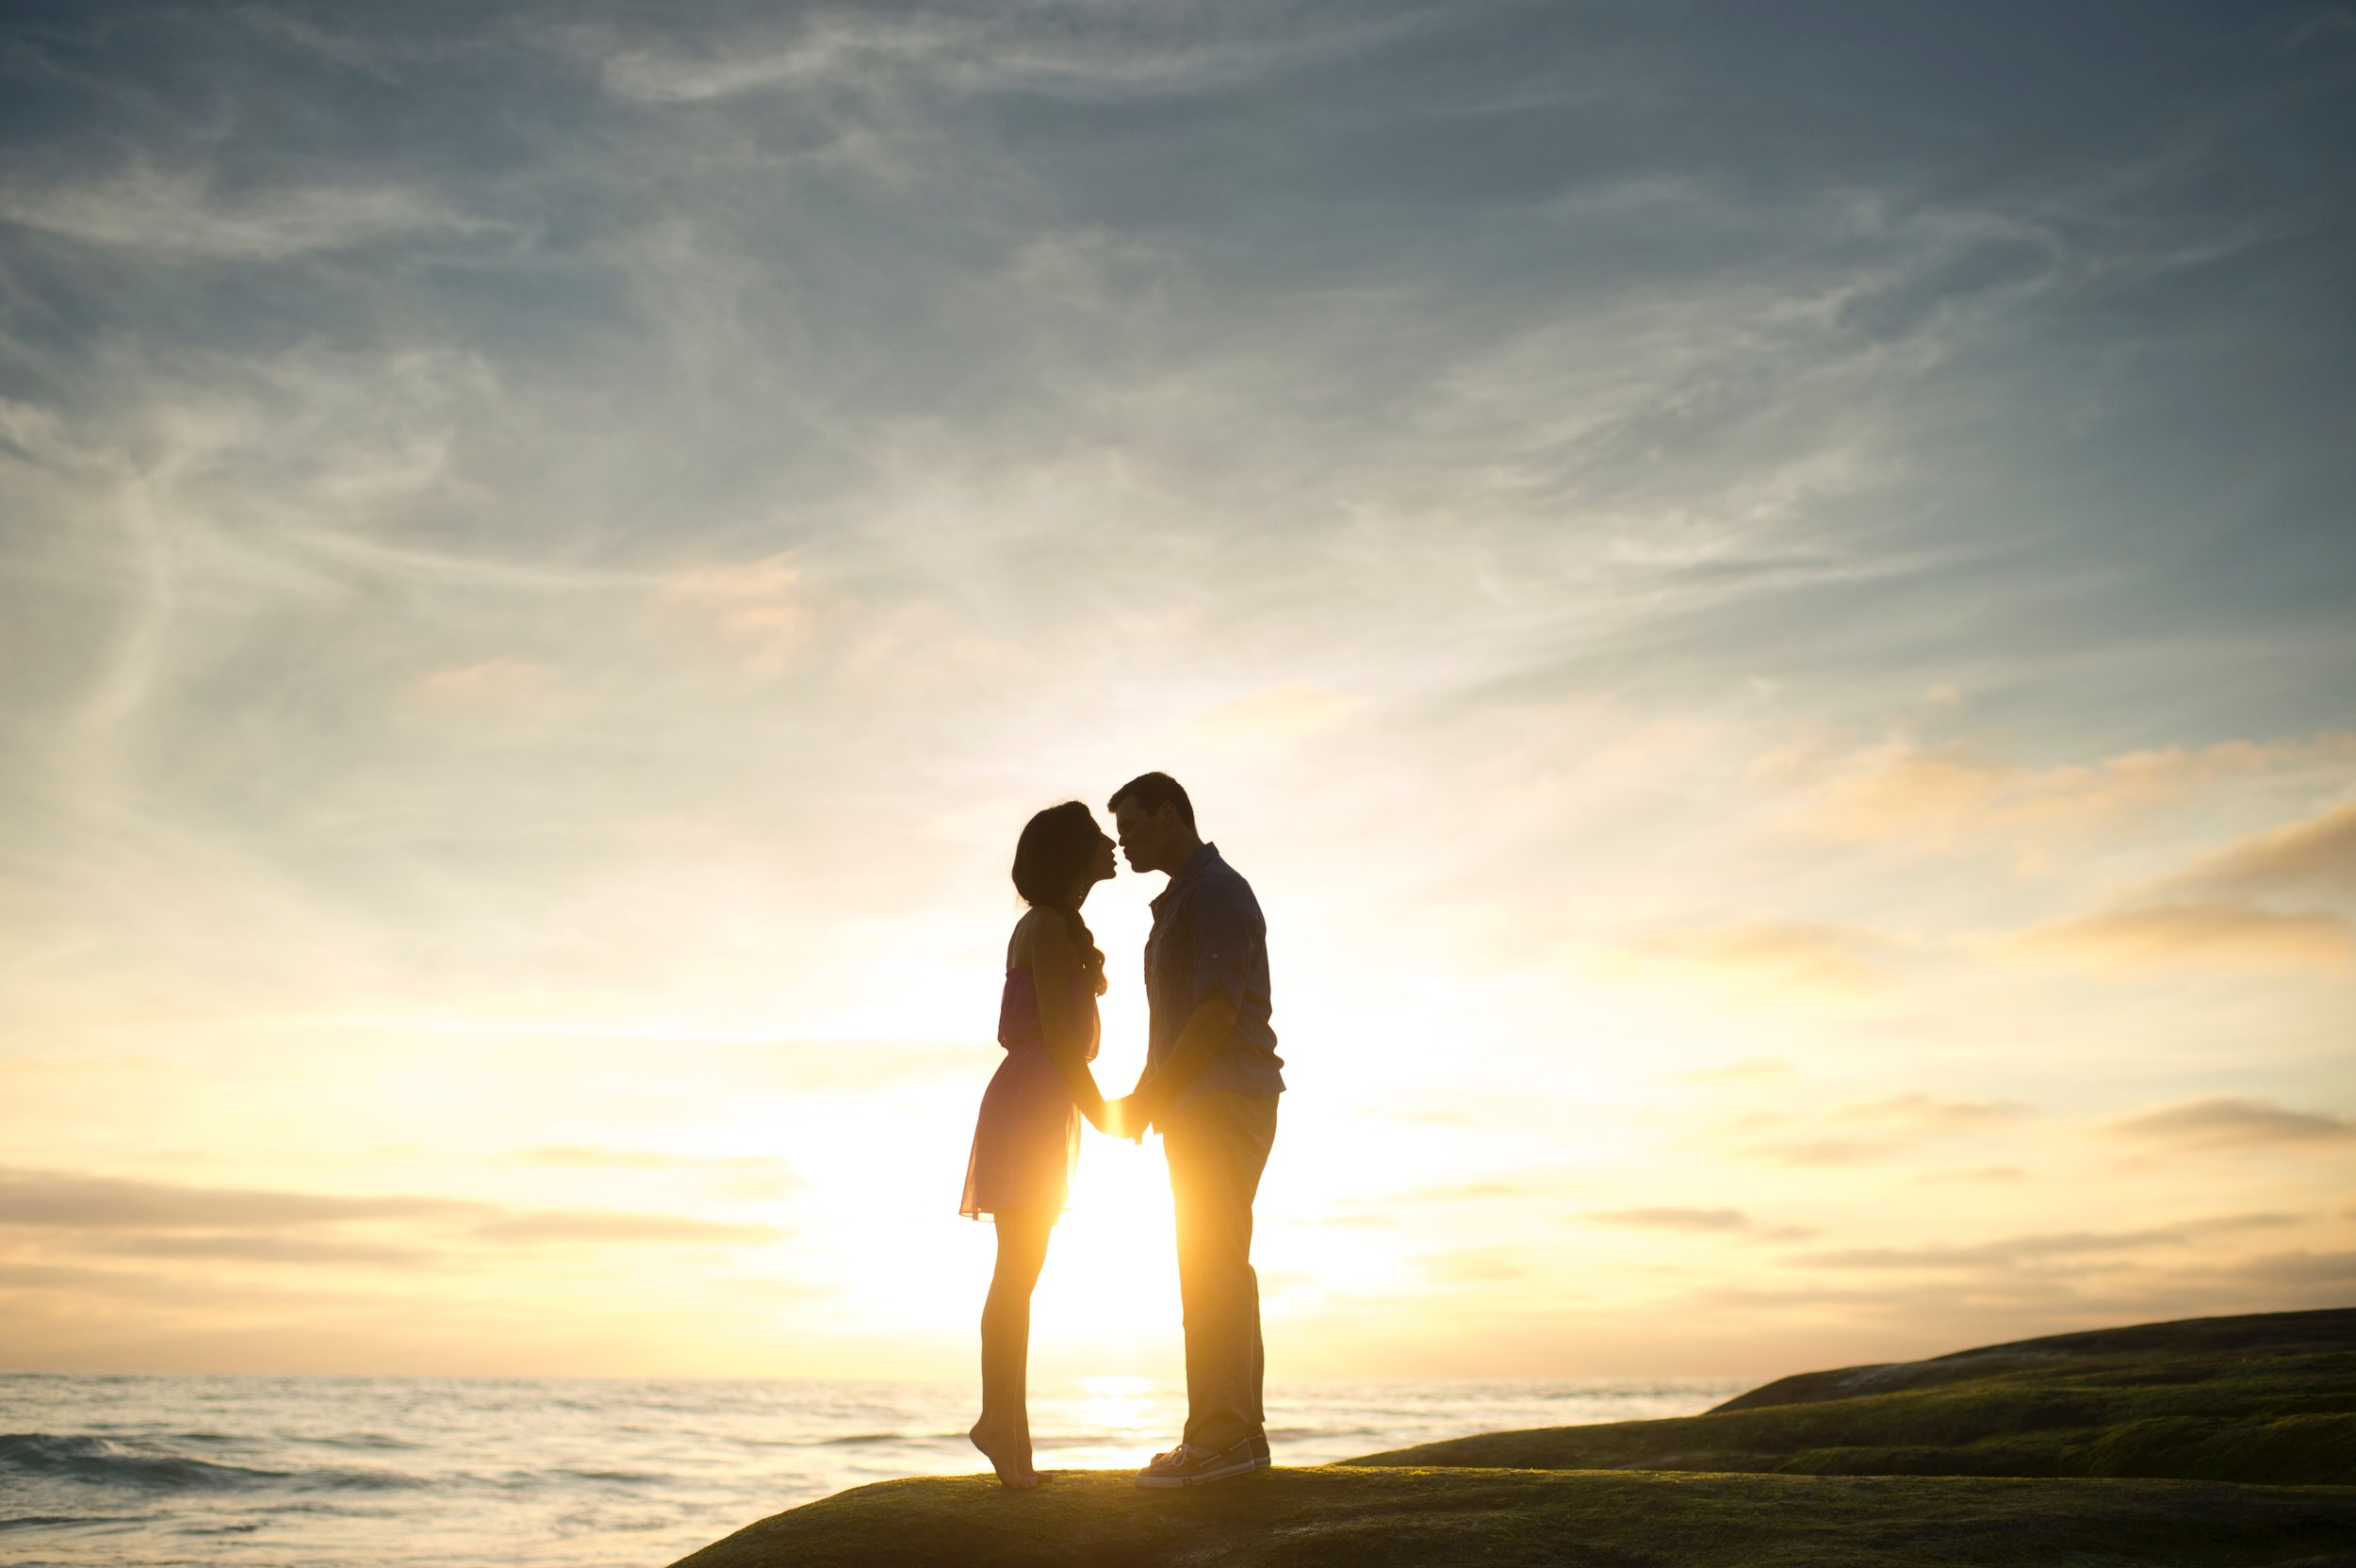 Couples - Imagine a life where you can feel loved and appreciated. Where time together is actually enjoyable. No more walking on eggshells. No more dreading how the day is going to turn out because you just can't seem to get along anymore. No more feeling drained and hopeless. This can become your reality. Are you ready to put in the work?